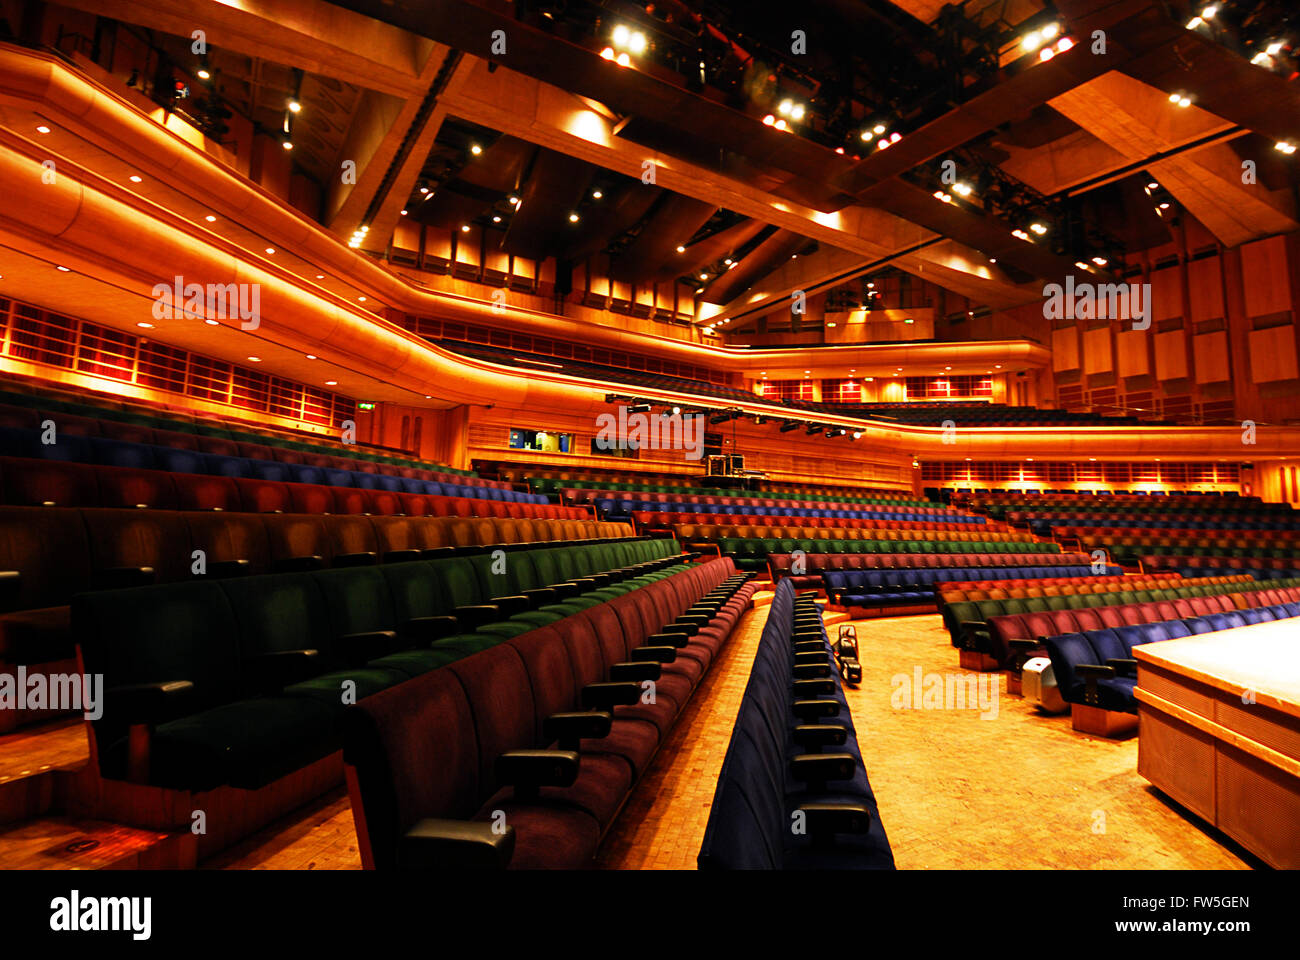 Barbican Centre Interior Of The Concert Hall Auditorium London Stock Photo Royalty Free